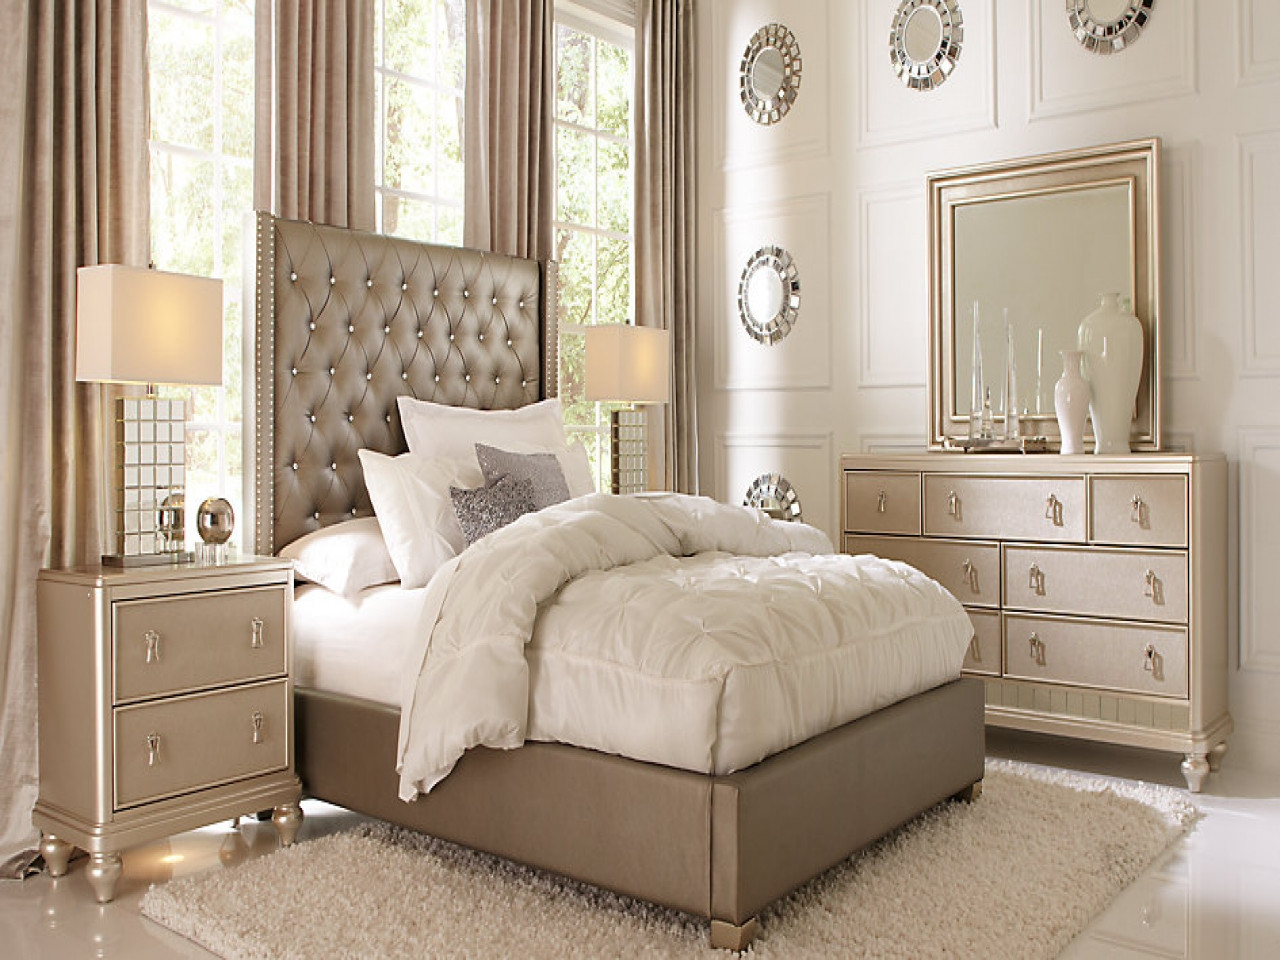 Best ideas about Queen Bedroom Sets . Save or Pin Rooms go bedroom furniture affordable sofia vergara queen Now.